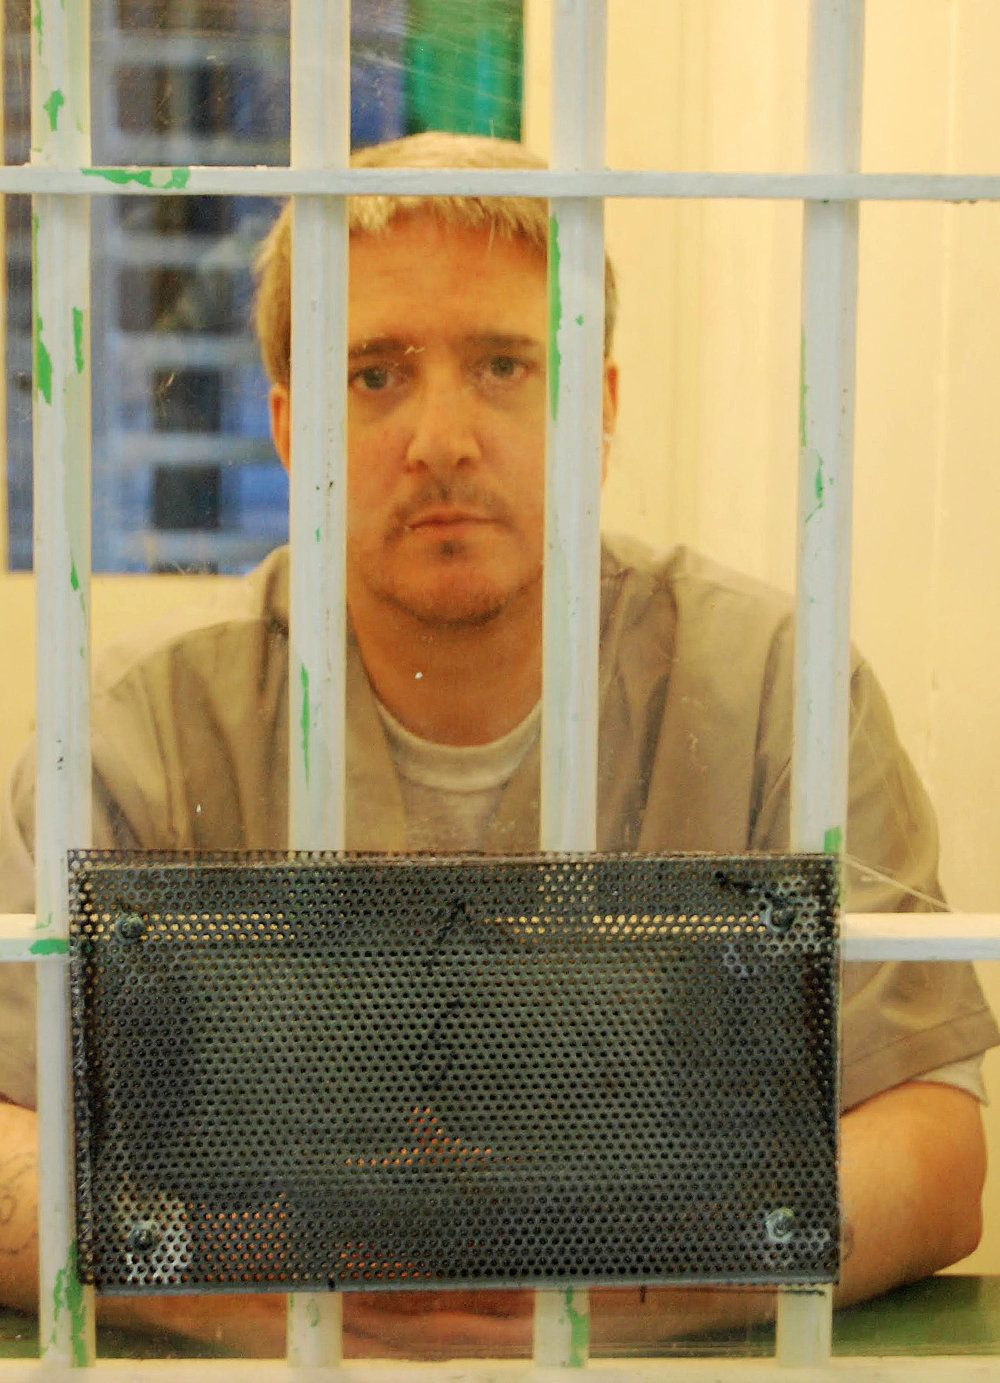 Without Supreme Court intervention, Richard Glossip is set to die on Wednesday.